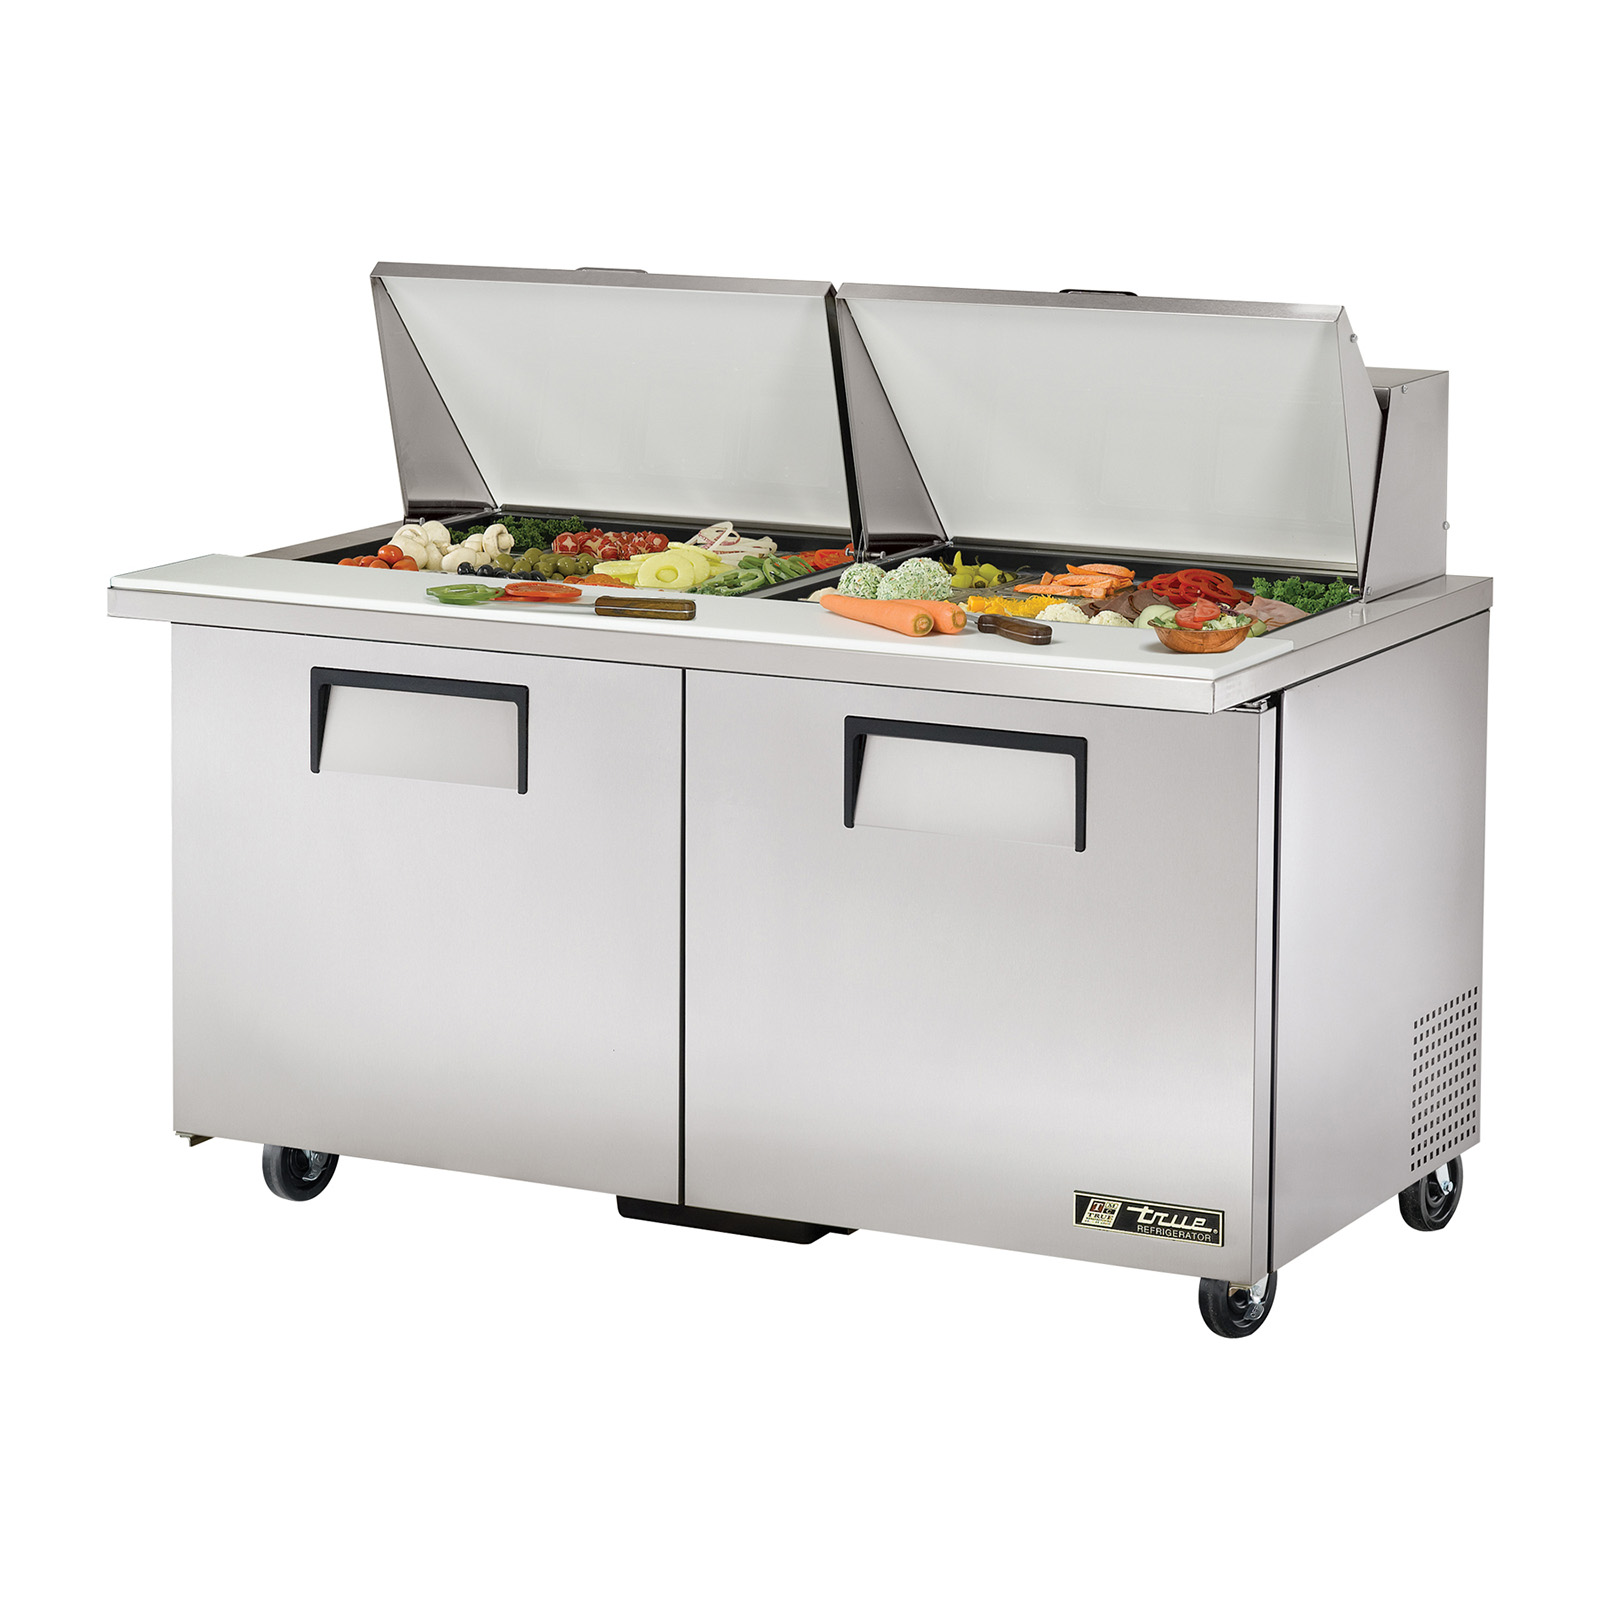 TSSU-60-24M-B-ST True - Mega Top Sandwich/Salad Unit (24) 1/6 size (4